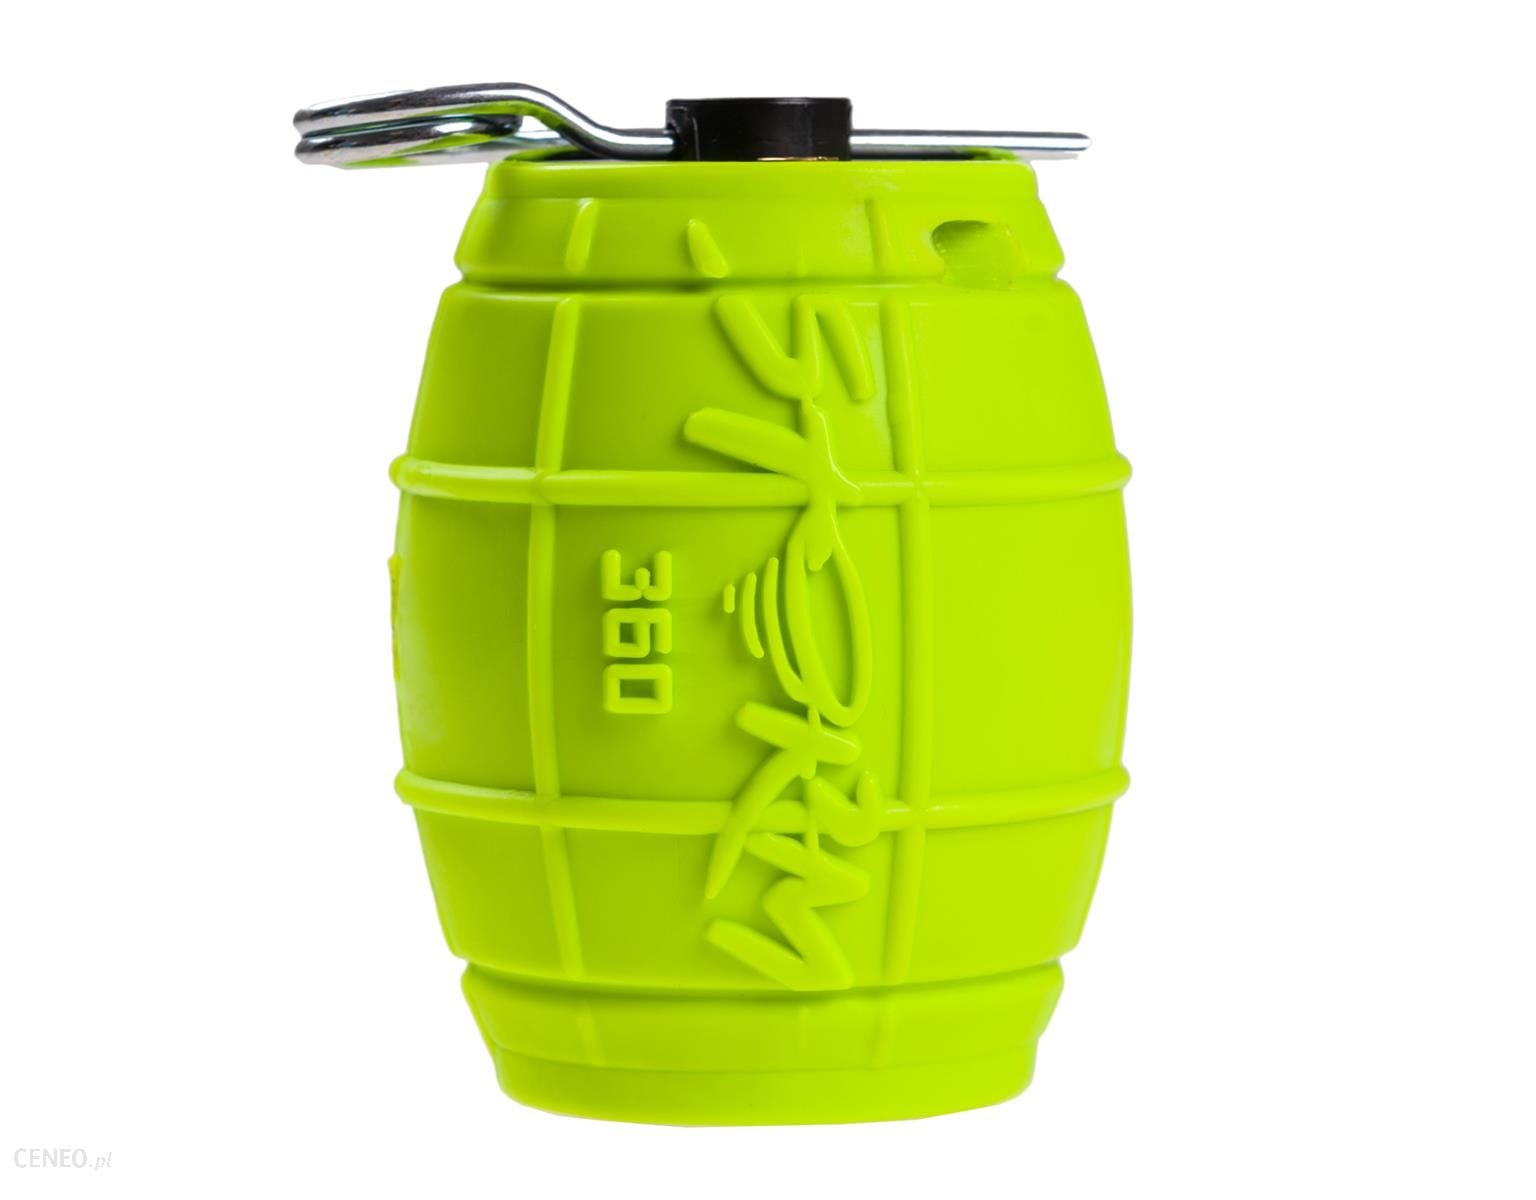 action sport games Granat ASG Storm 360 lime green 19082